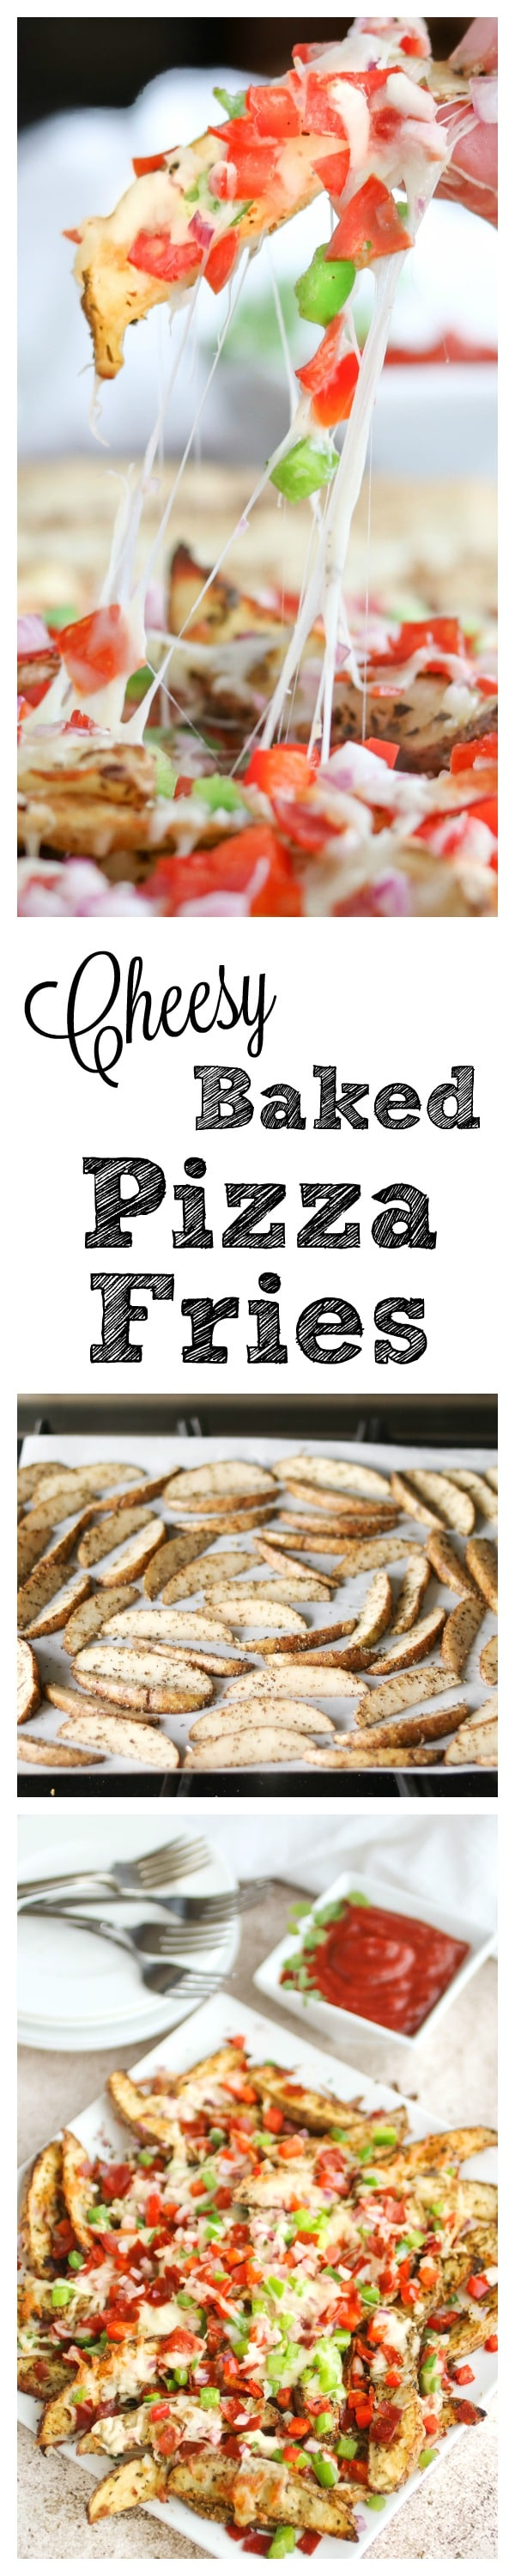 Cheesy Oven-Baked Pizza Fries ~ These Oven-Baked Pizza Fries are so easy to make, and always a total hit! Loaded with cheesy pizza flavors for a deliciously fun twist! A great snack or appetizer … and perfect for game day! {www.TwoHealthyKitchens.com}